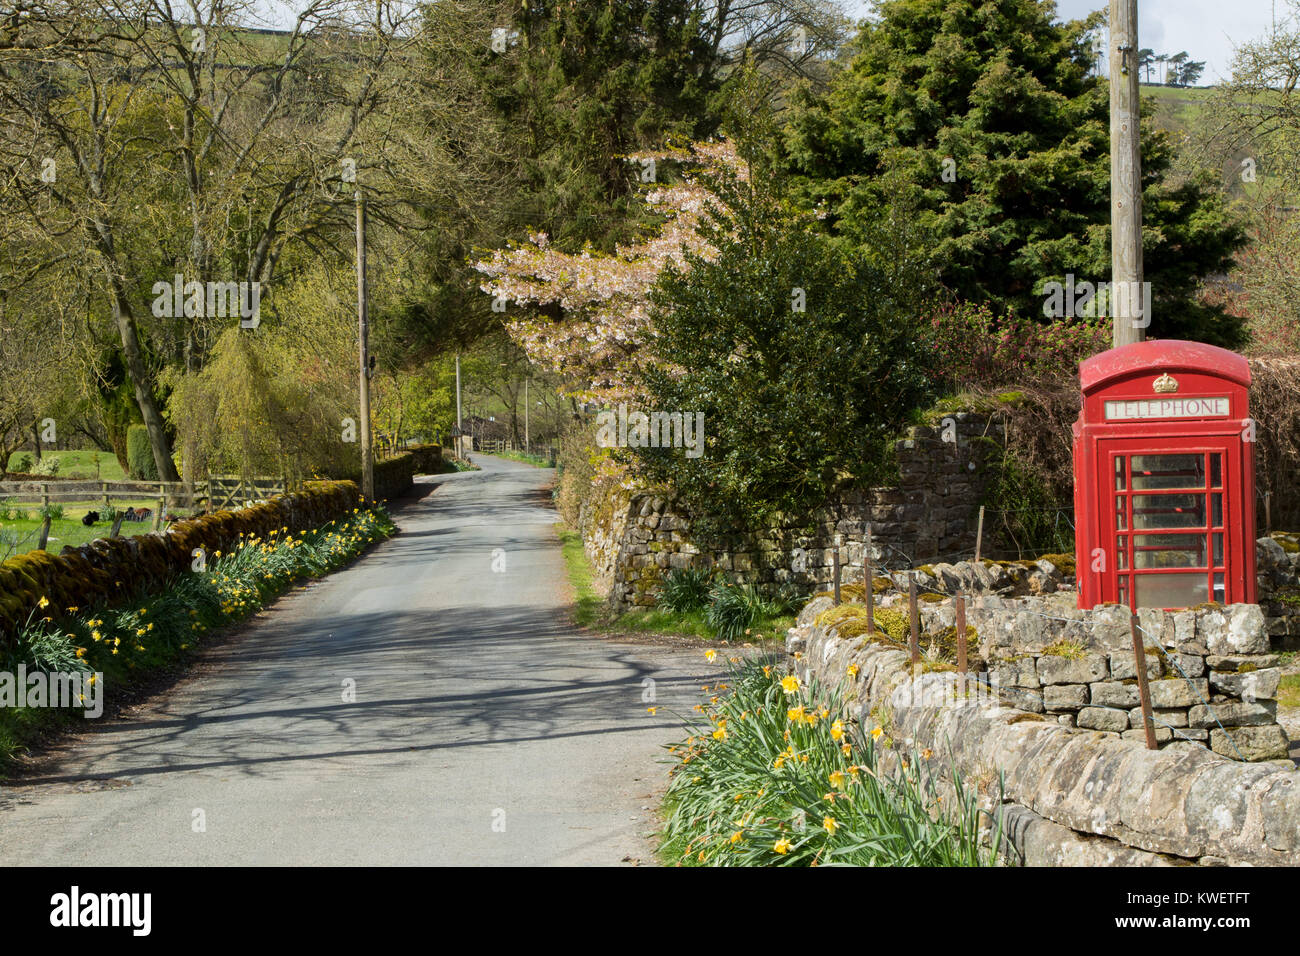 Red telephone box on a country road in a small village called Wath,Pateley Bridge,North Yorkshire,England,UK. - Stock Image